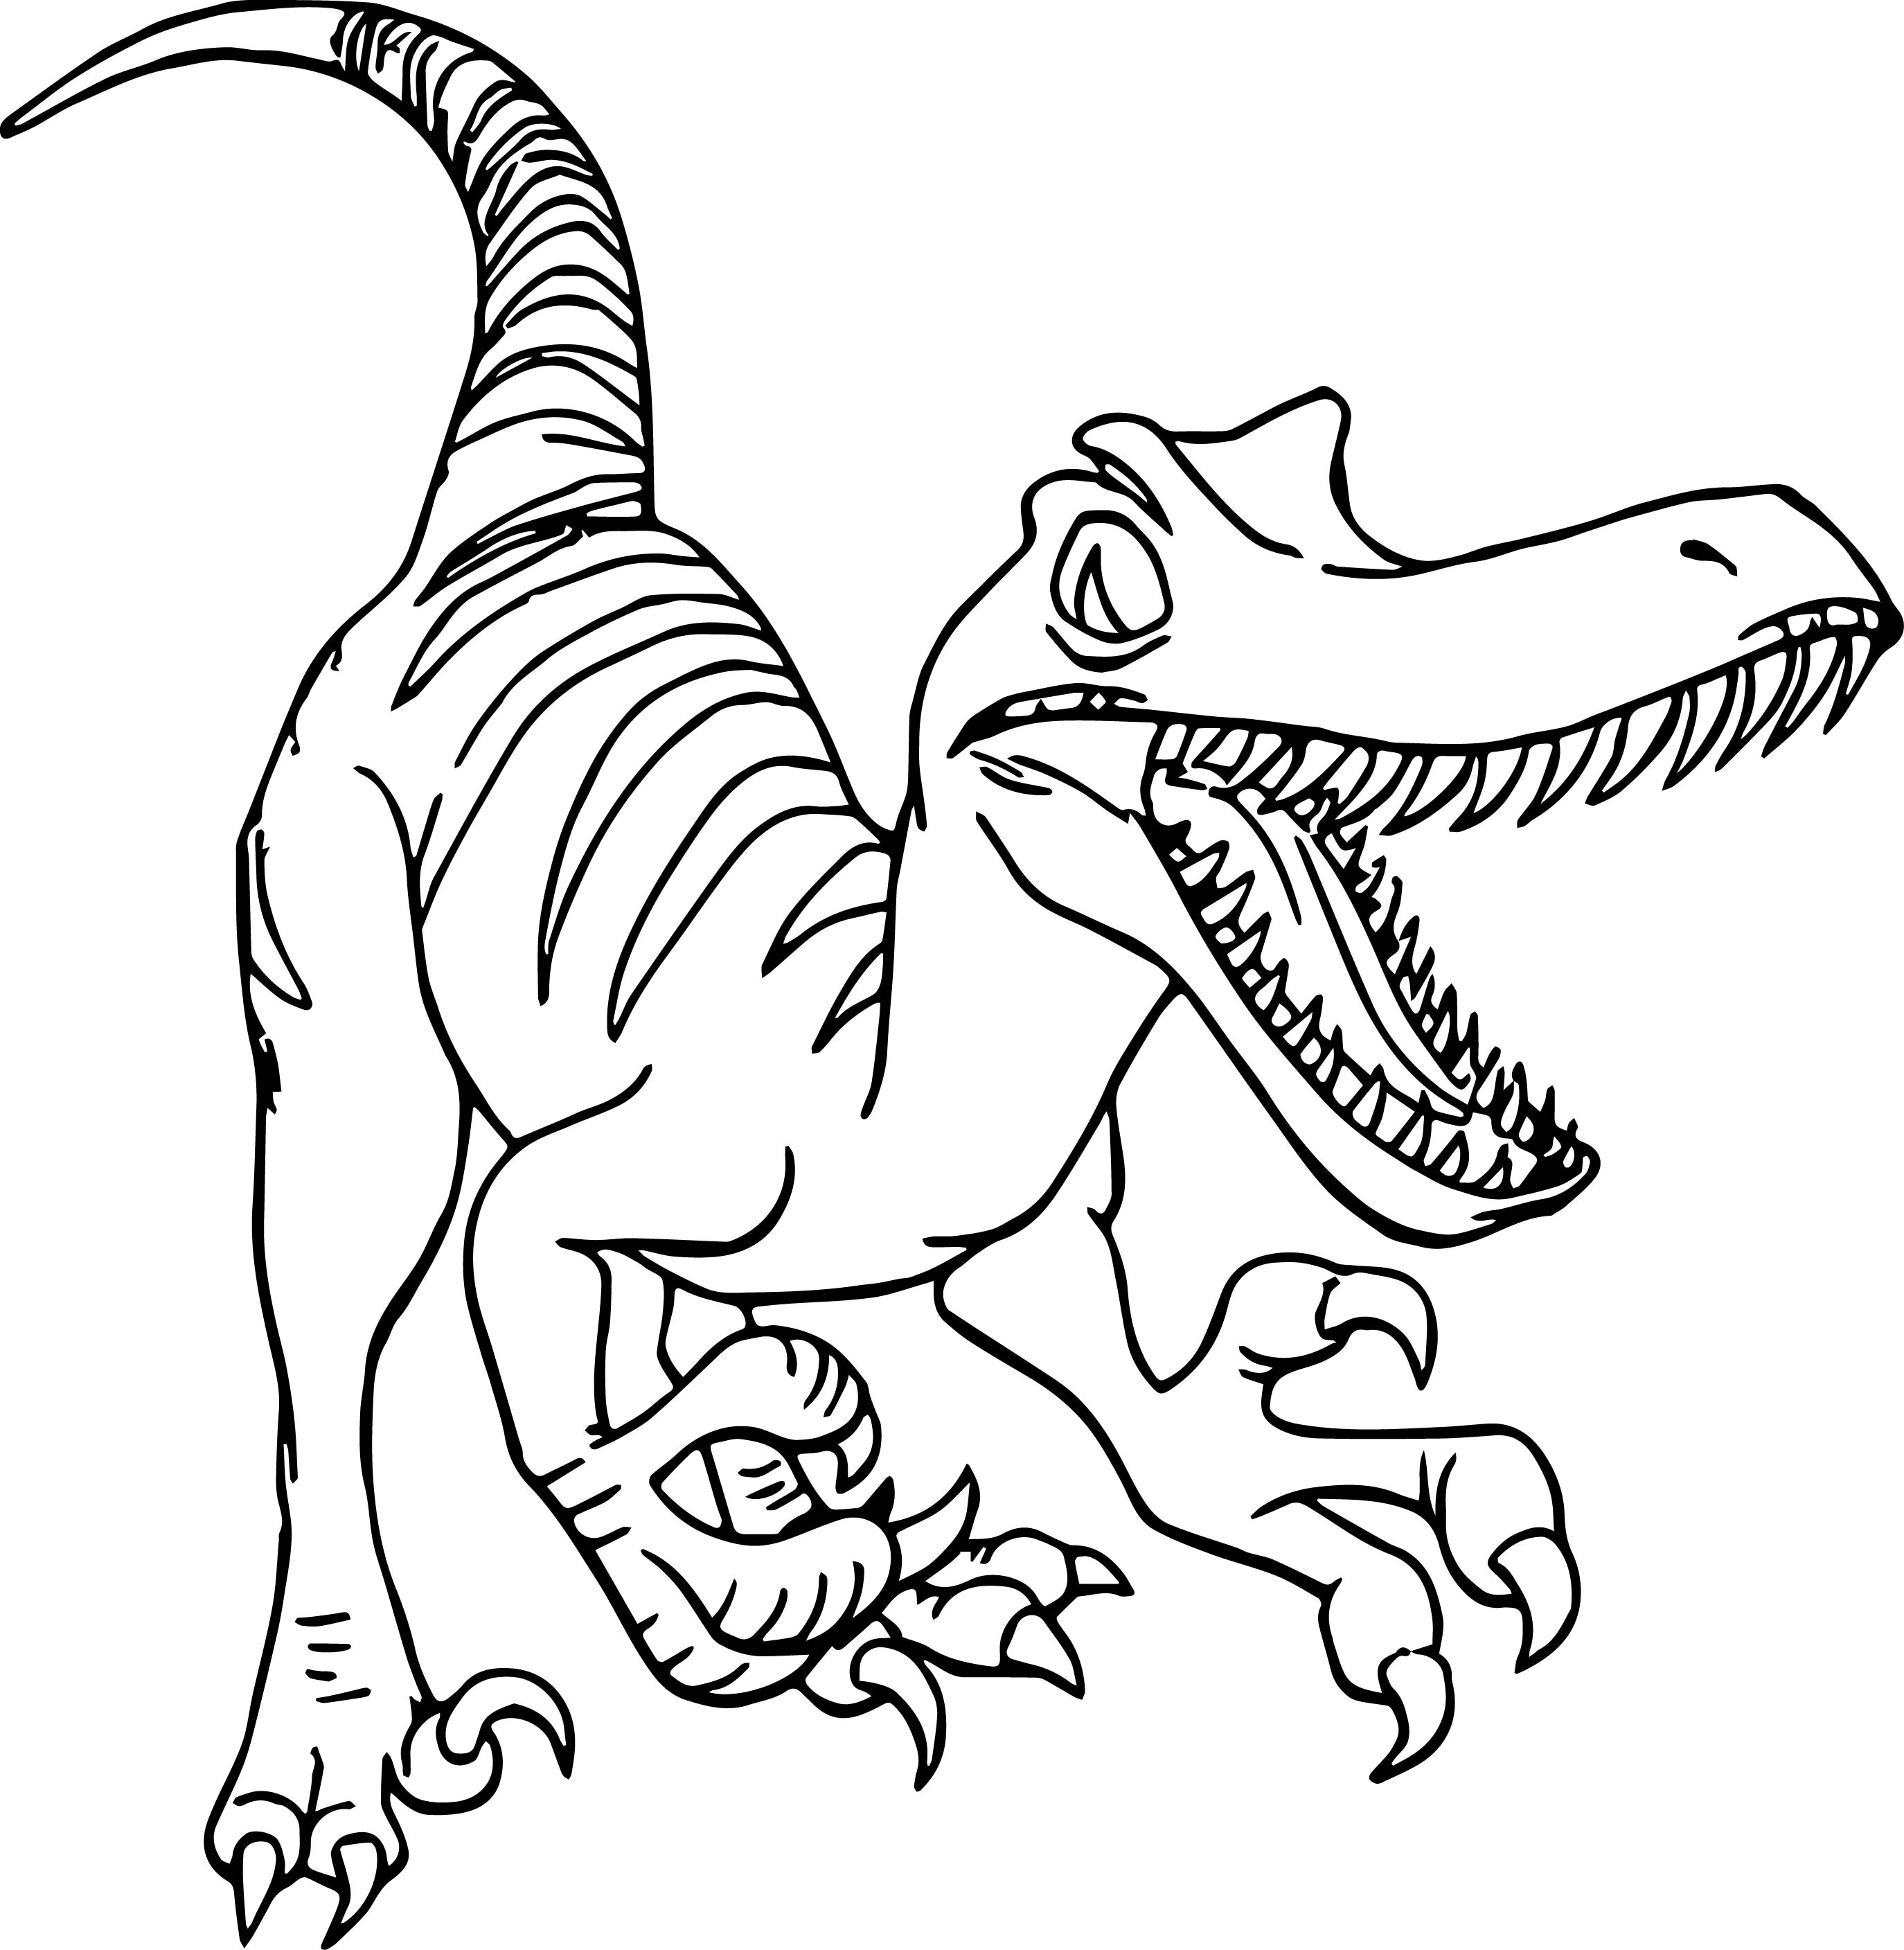 Raptor Coloring Pages At Getdrawings Com Free For Personal Use